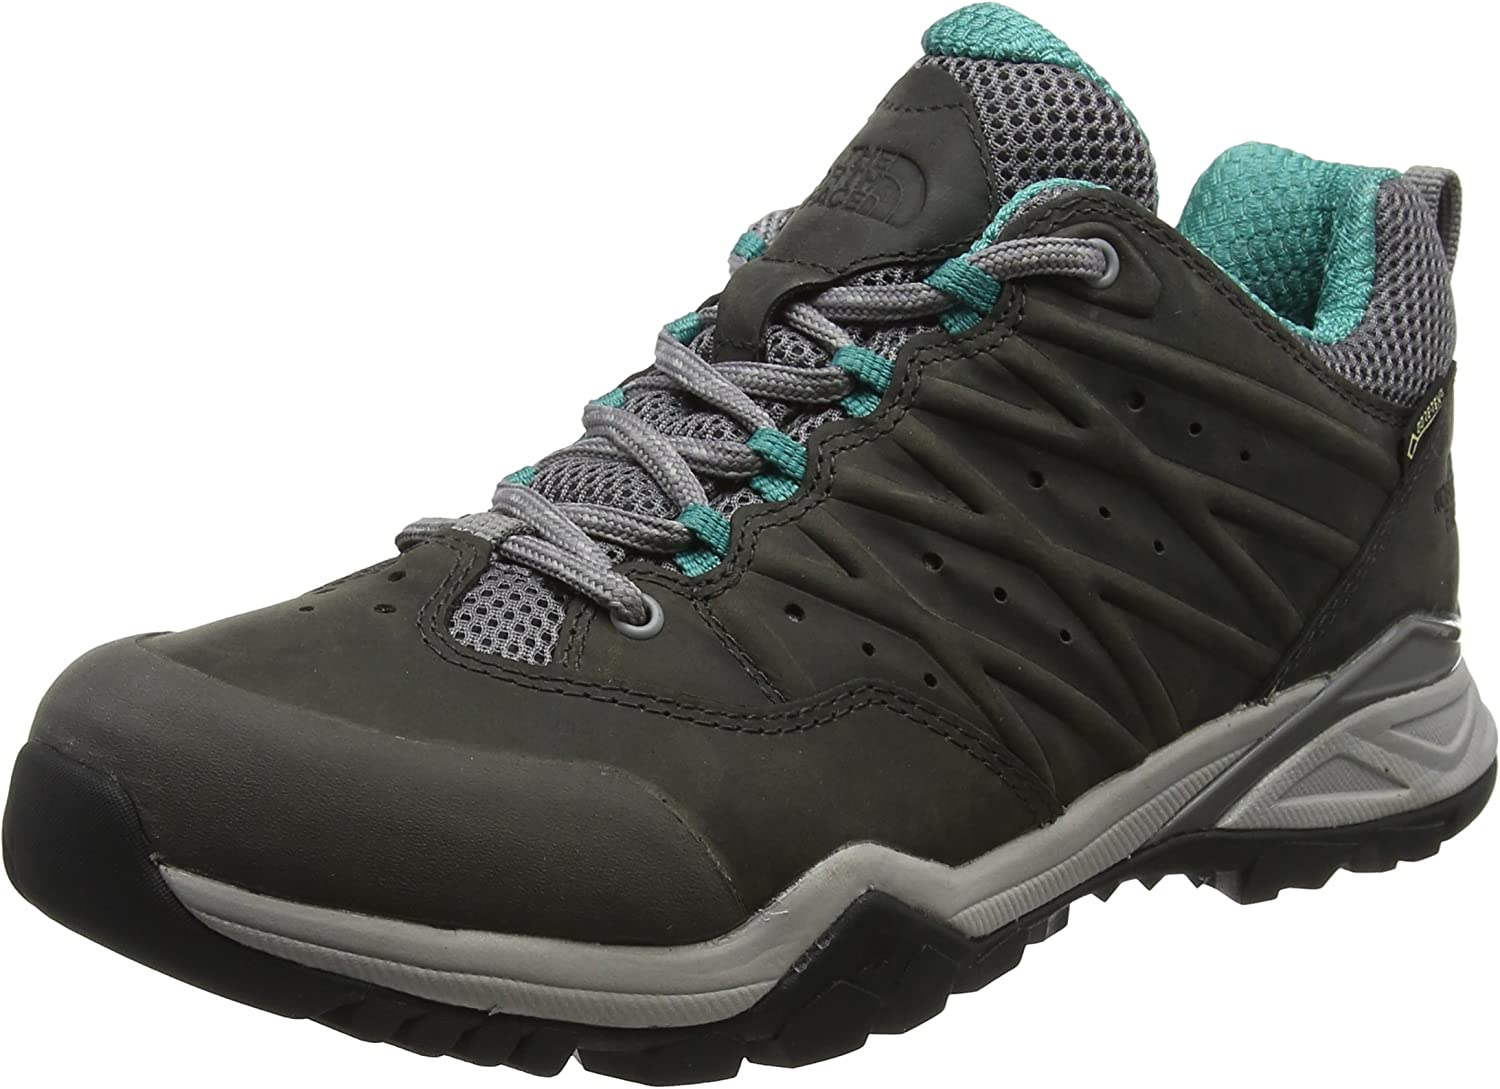 The North Face Women's Hedgehog Hike II Gore-Tex